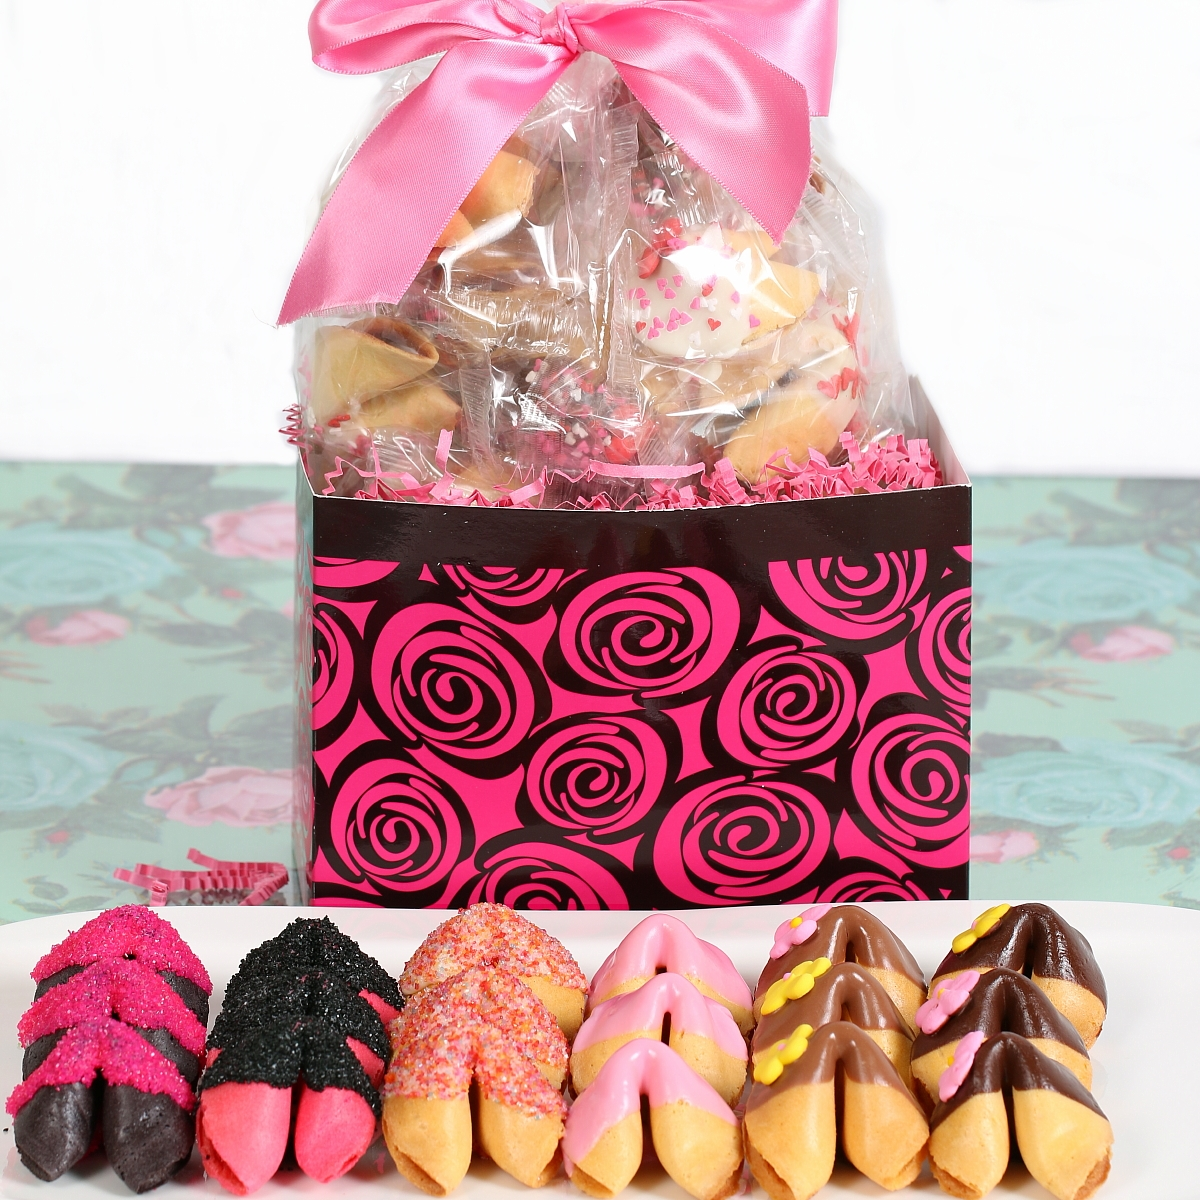 Dramatic Daisy Mother\'s Day Gift | Chocolate Covered Fortune Cookies ...